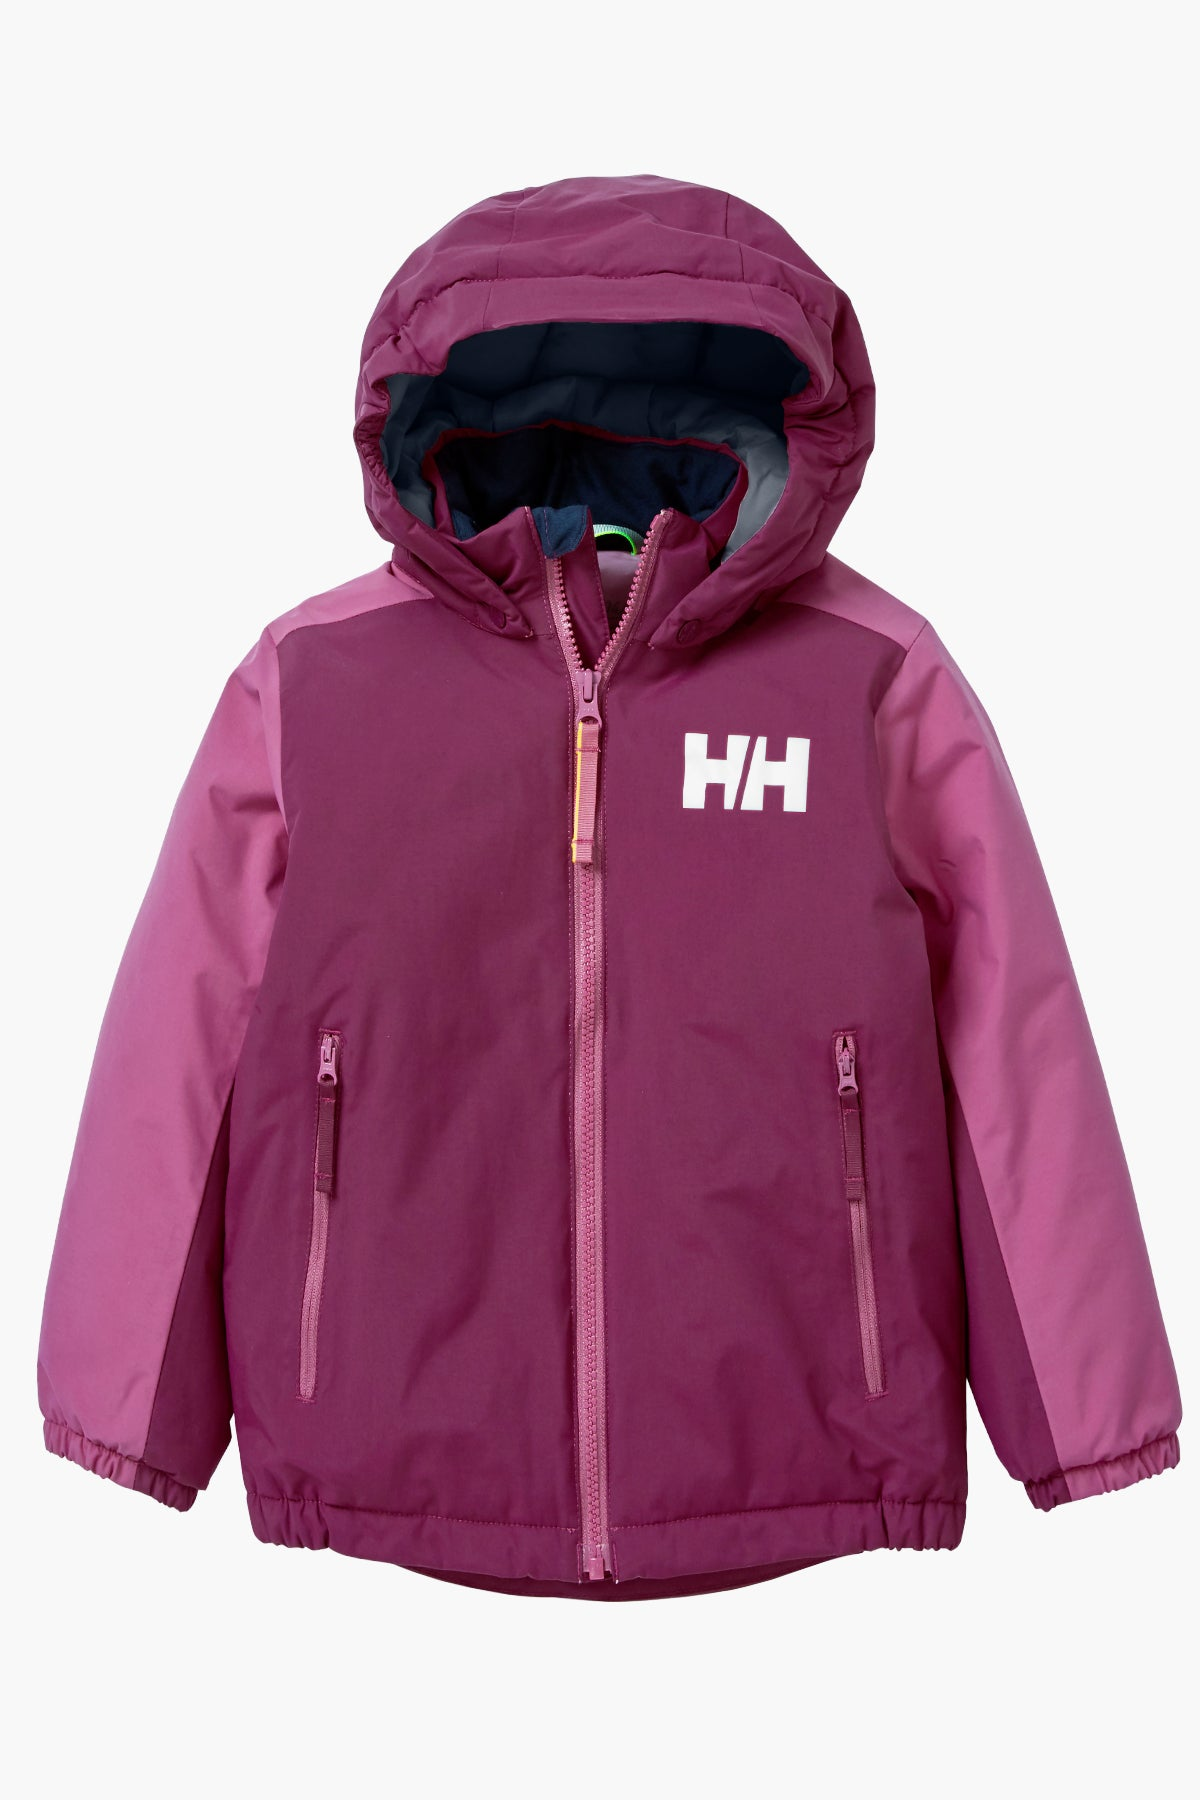 Helly Hansen Kids Jacket Norddal